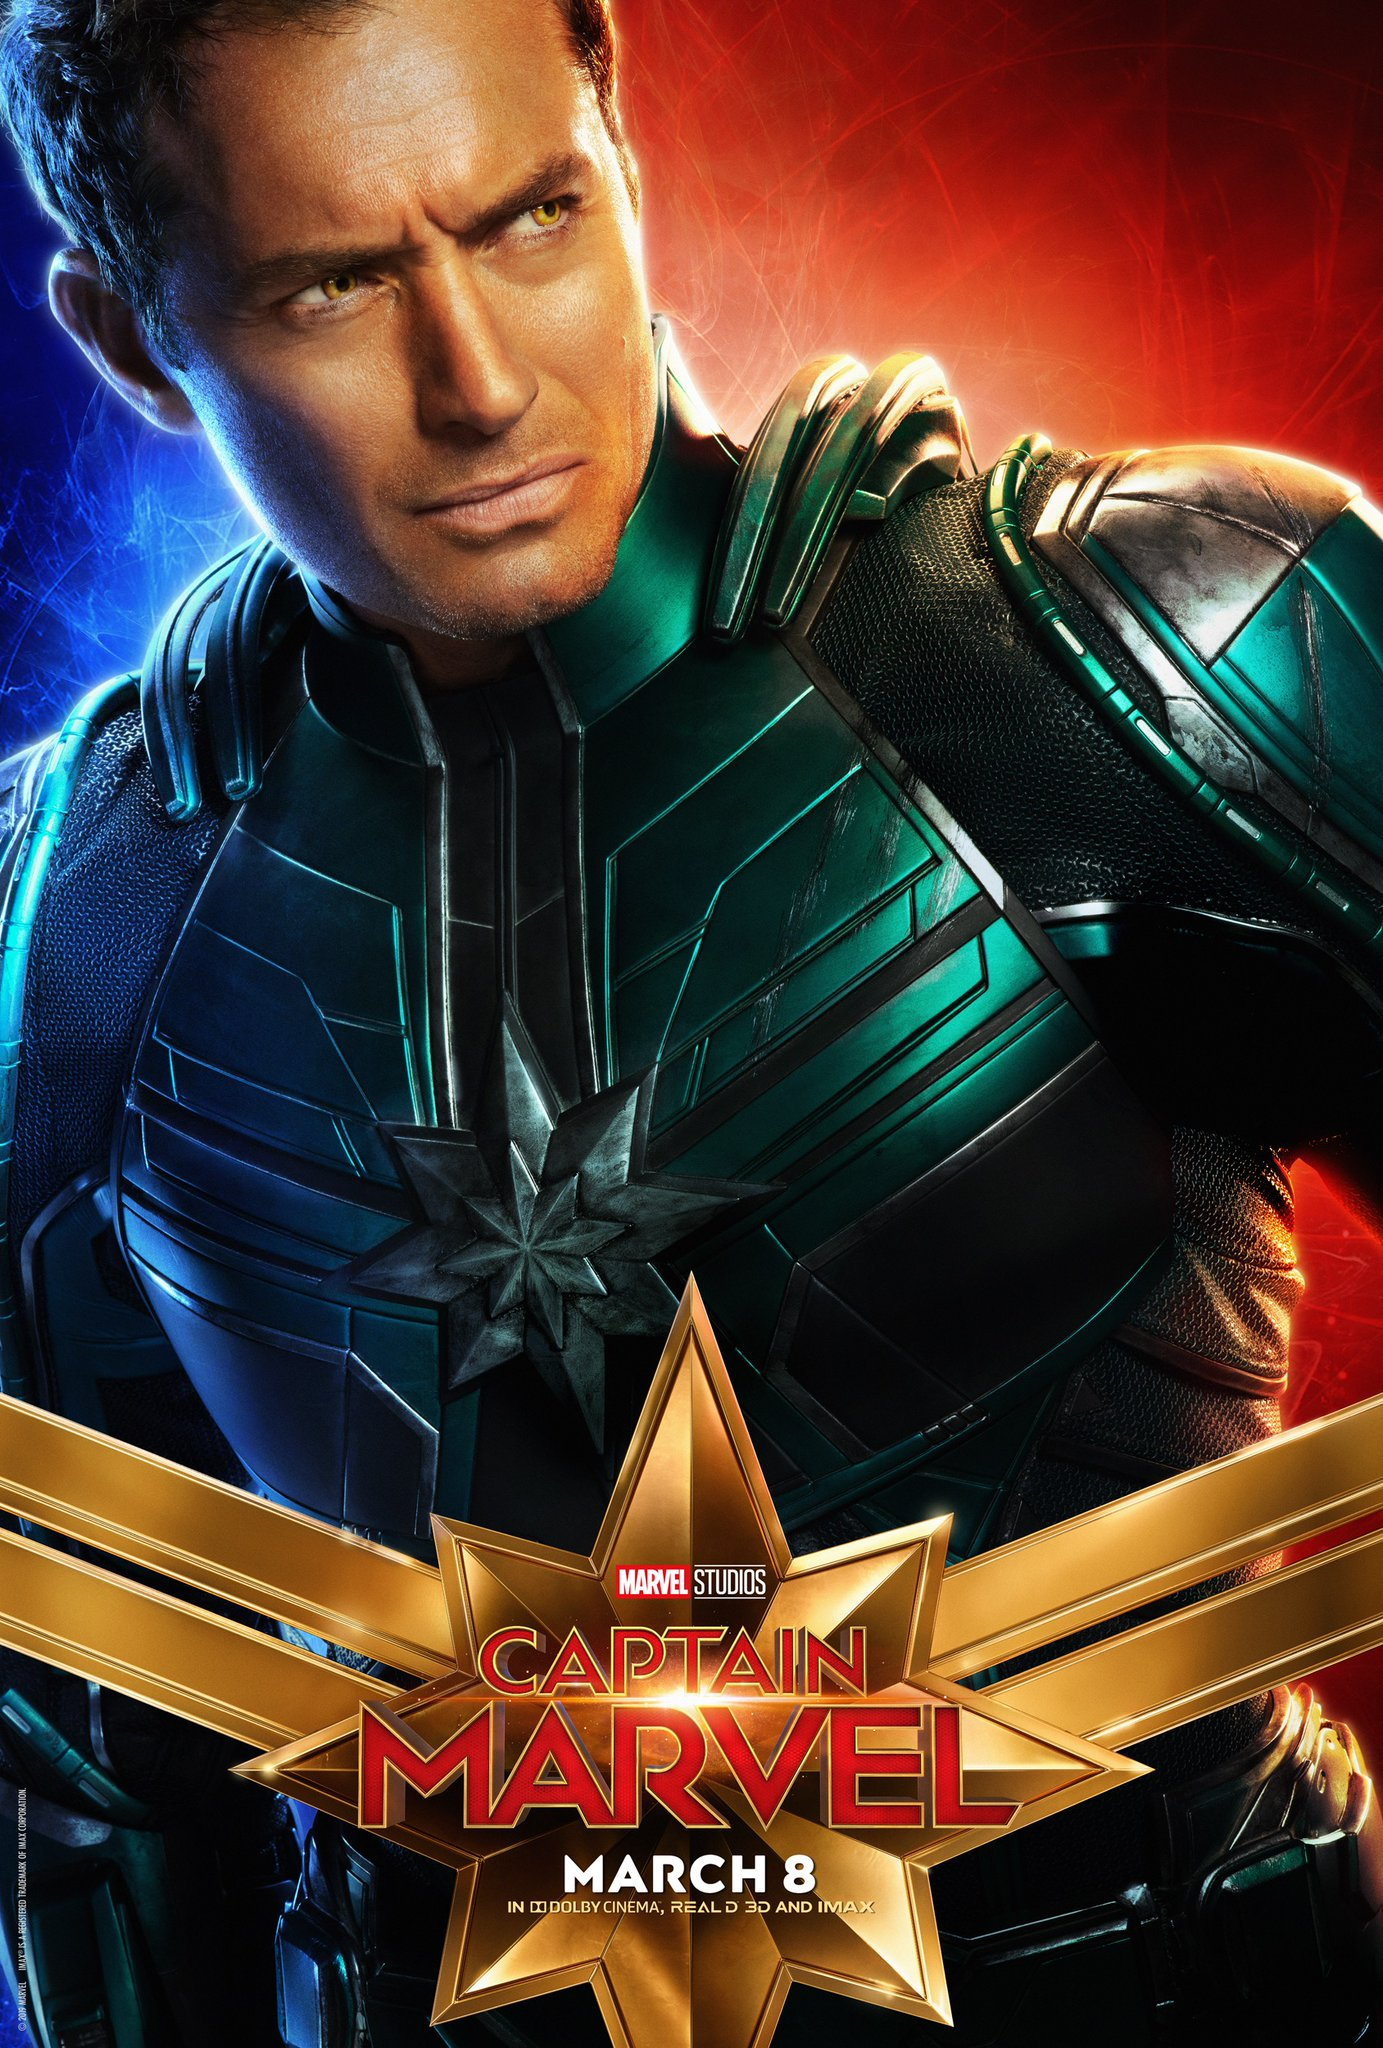 Captain Marvel Character Poster - Jude Law Marvell Yonn Rogg